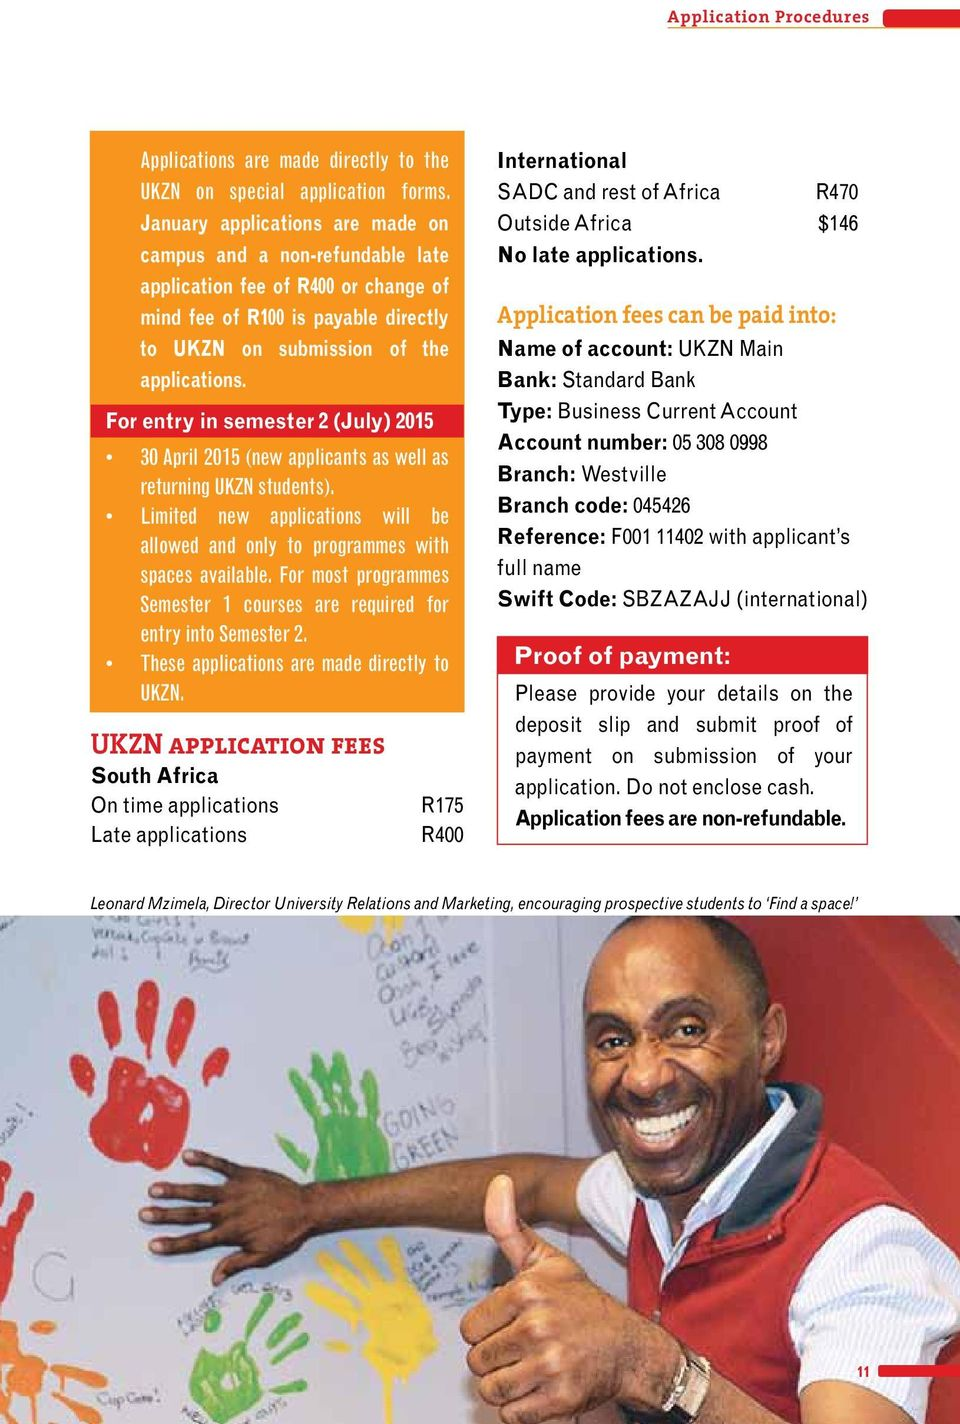 For entry in semester 2 (July) 2015 30 April 2015 (new applicants as well as returning UKZN students). Limited new applications will be allowed and only to programmes with spaces available.